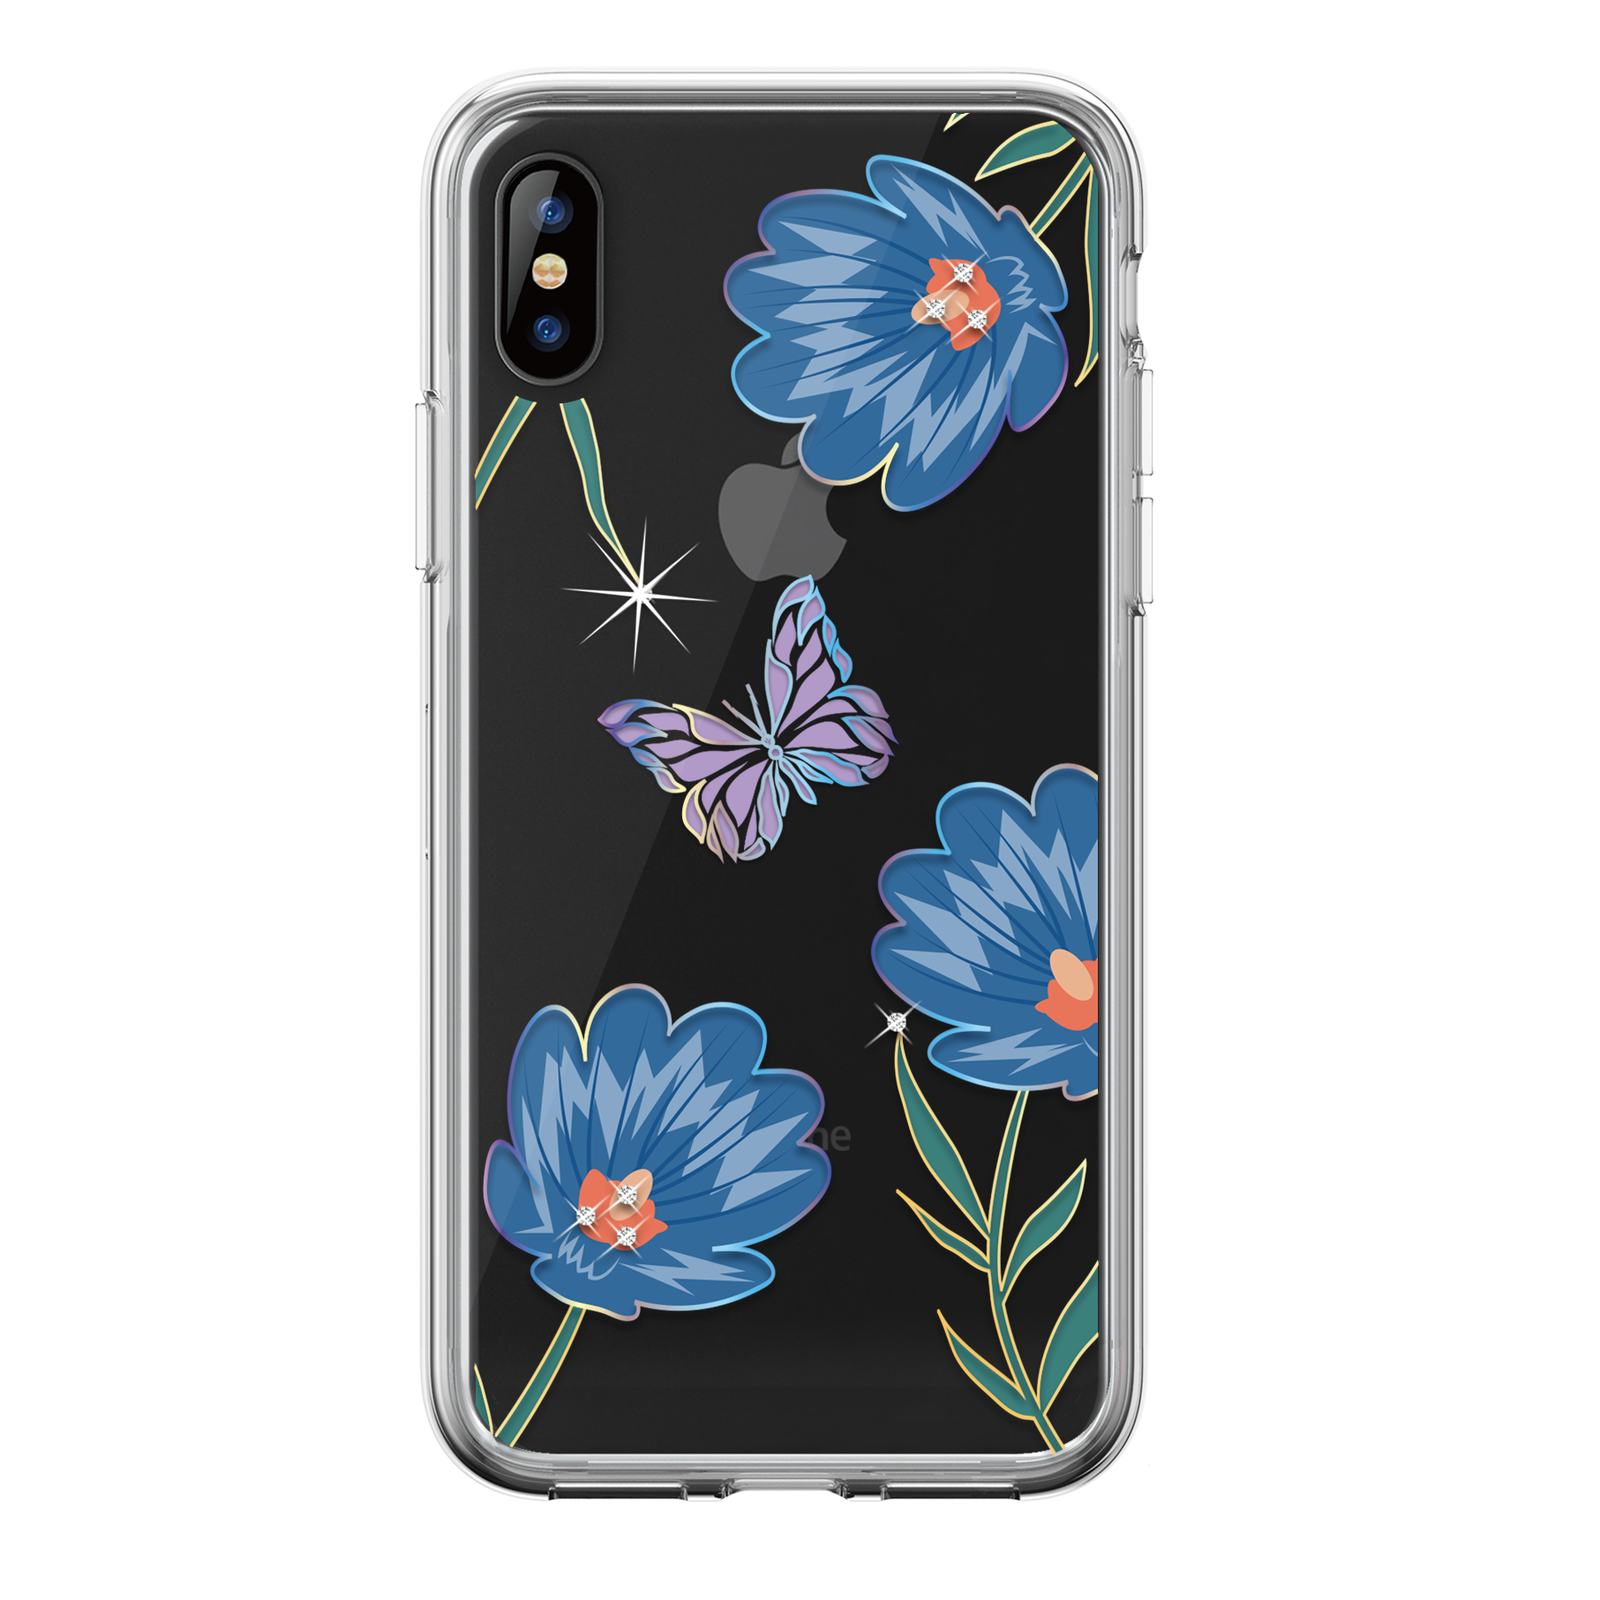 iPhone-XS-Max-XR-XS-X-Genuine-DEVIA-Flower-Gel-Case-Shockproof-Soft-TPU-Cover thumbnail 16